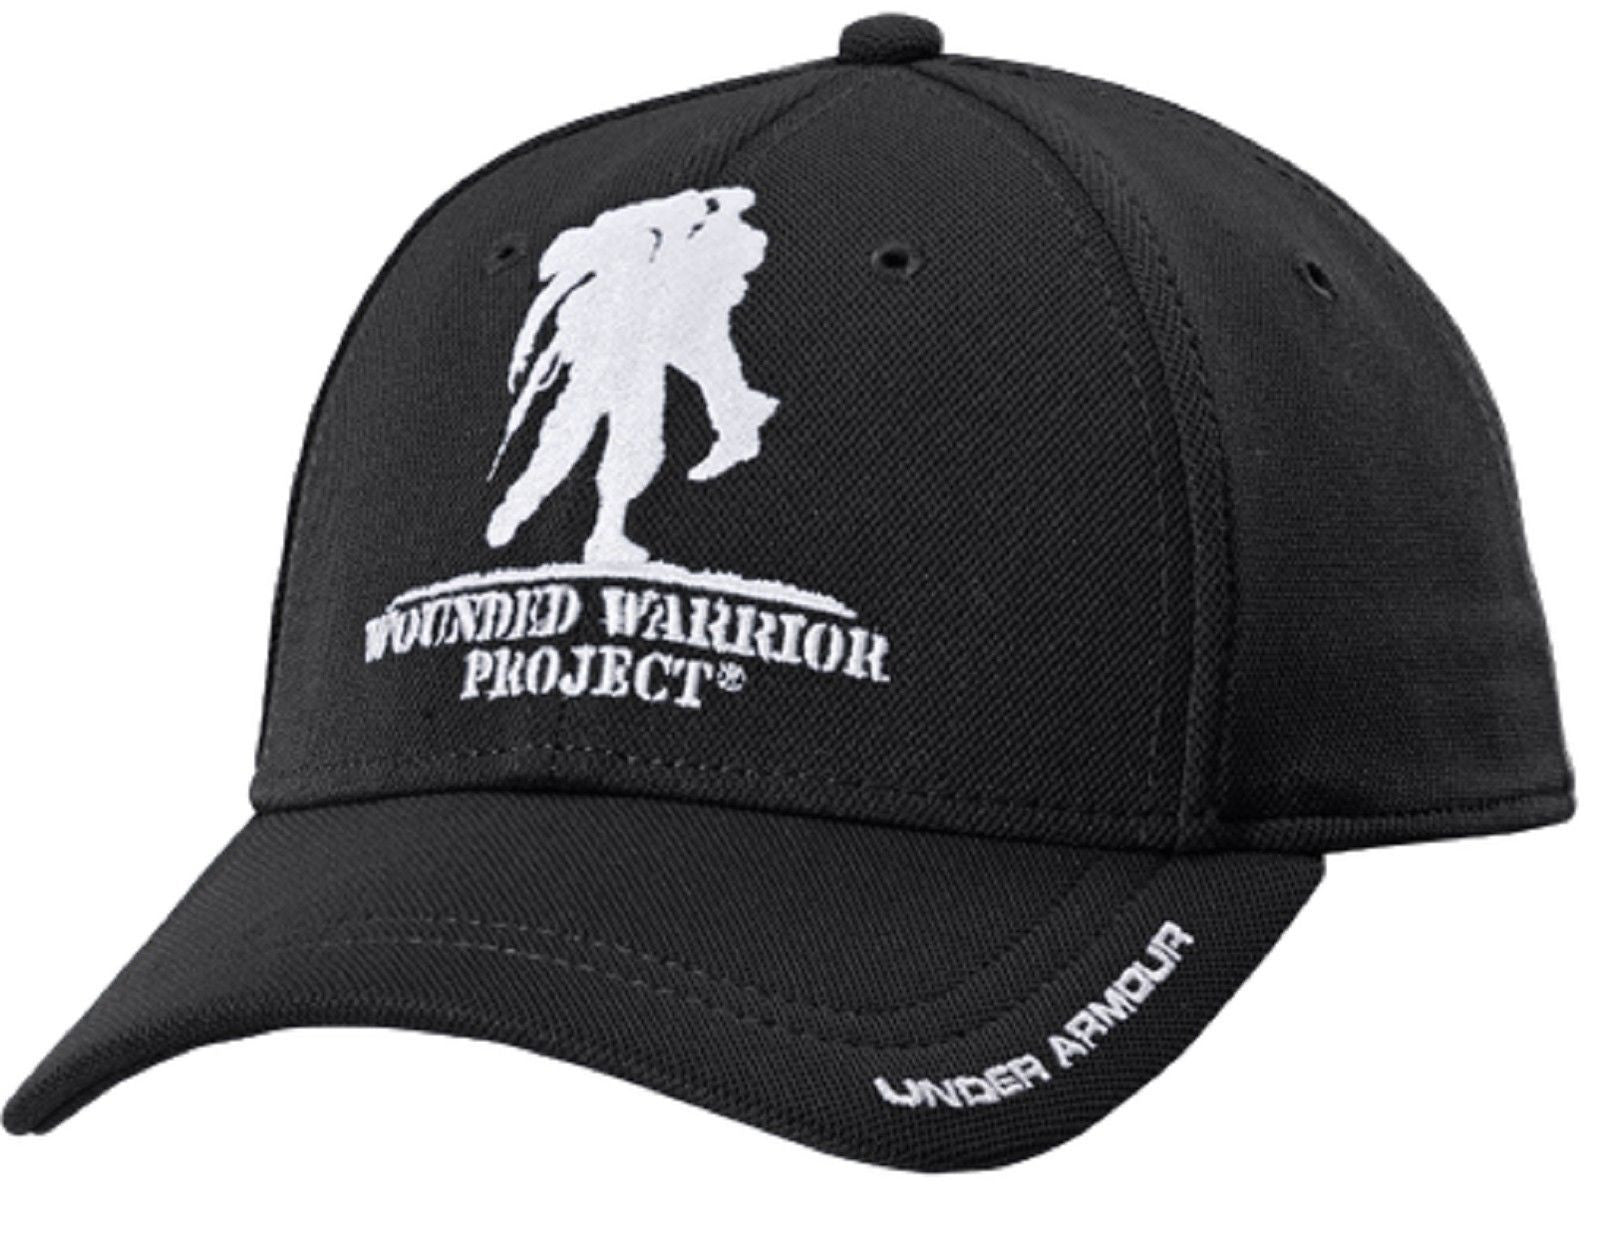 125cc86e19432 Under Armour Wounded Warrior Project Baseball Hat - UA Men s WWP ...